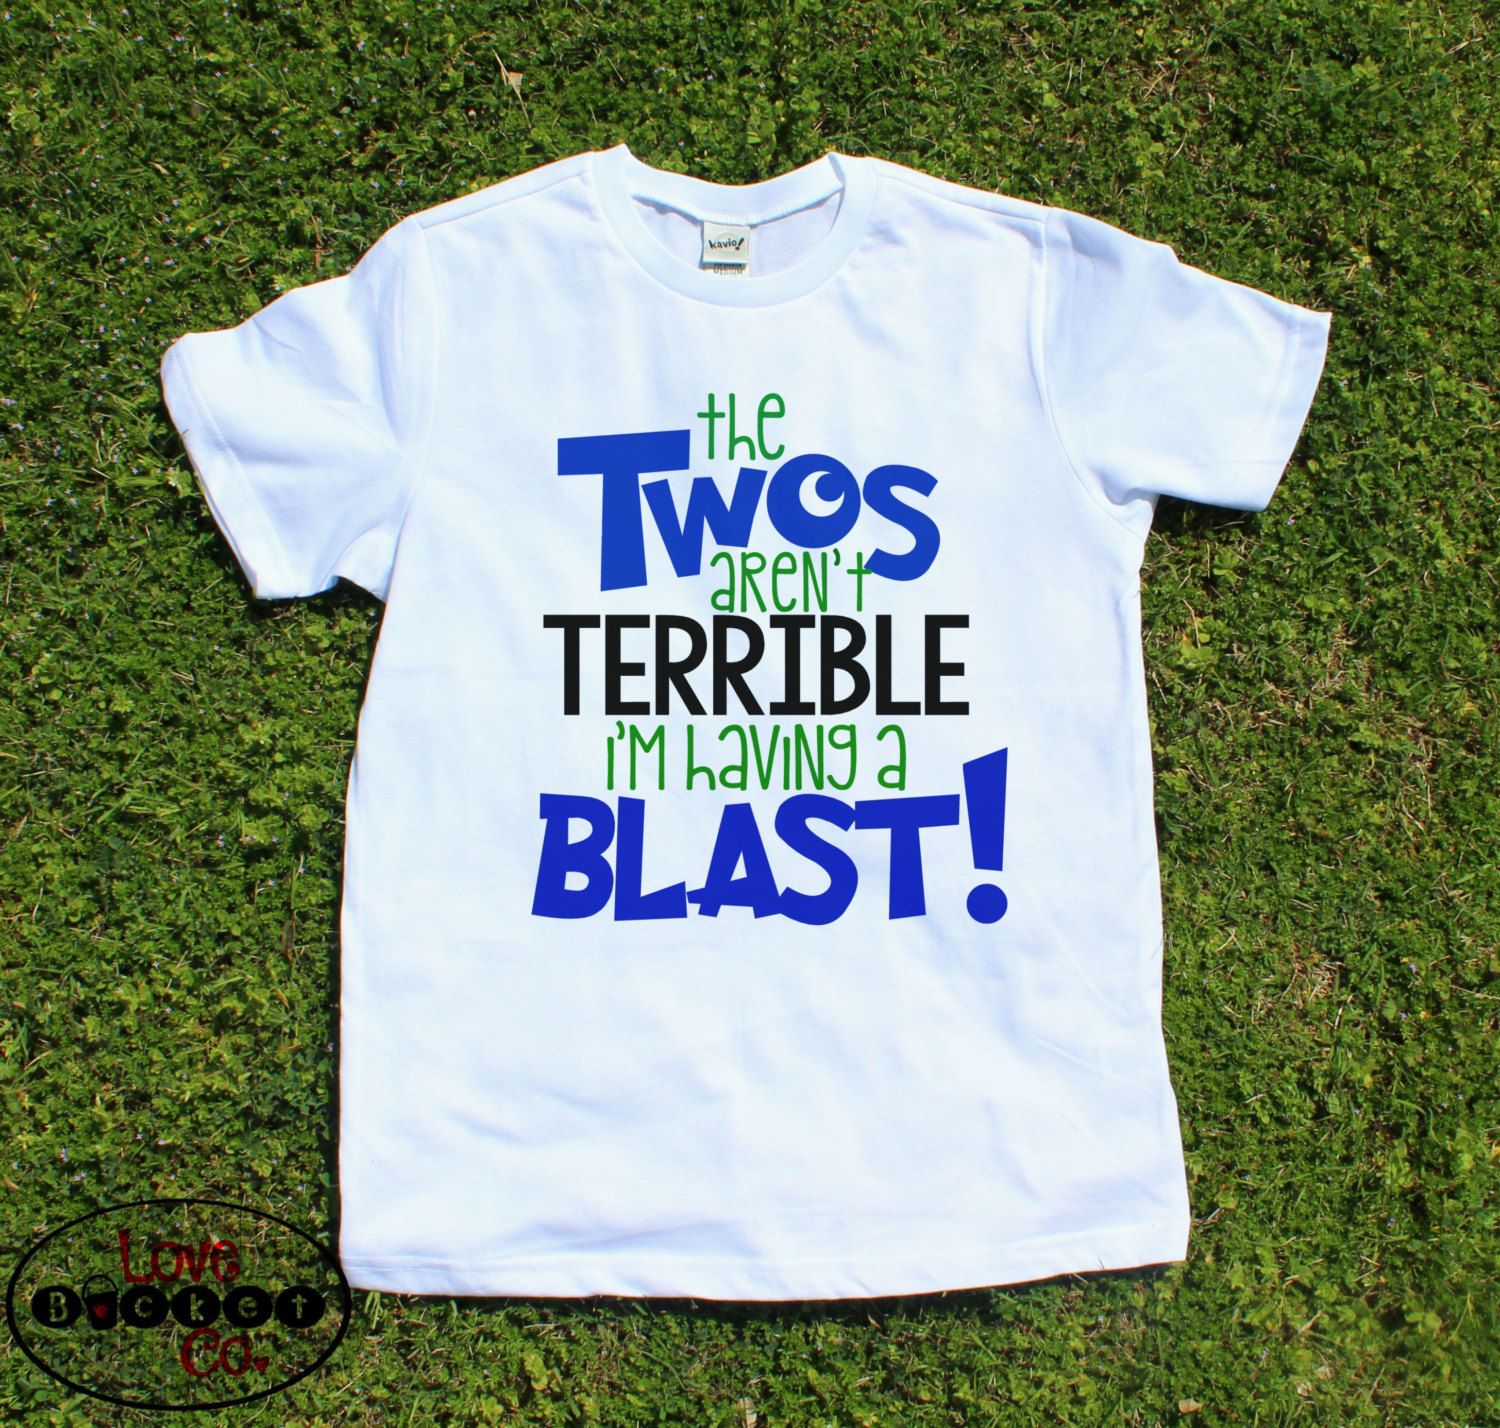 Second Birthday Two Year Birthday Shirt The Two 39 S Aren 39 T Terrible I 39 M Having A Blast Crew Neck Autism Shirts Girl 2nd Birthday 2nd Birthday Shirt